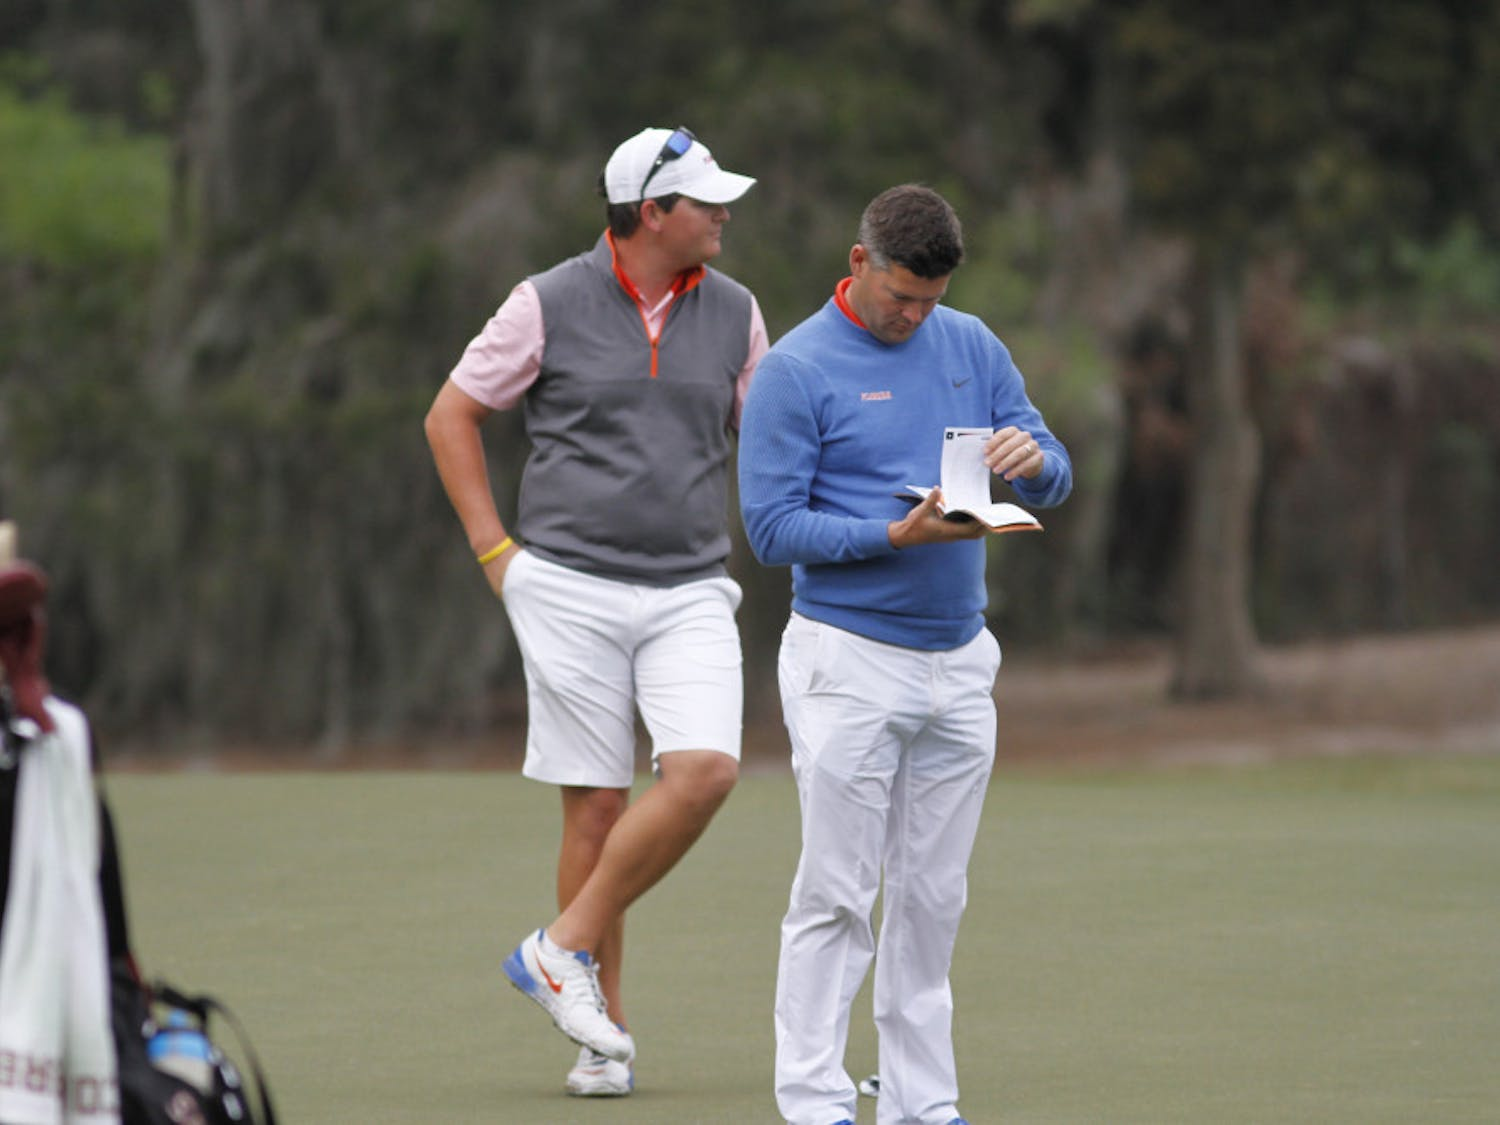 Men's golf coach J.C. Deacon said he was pleased with the way his team is trending and scoring this season.